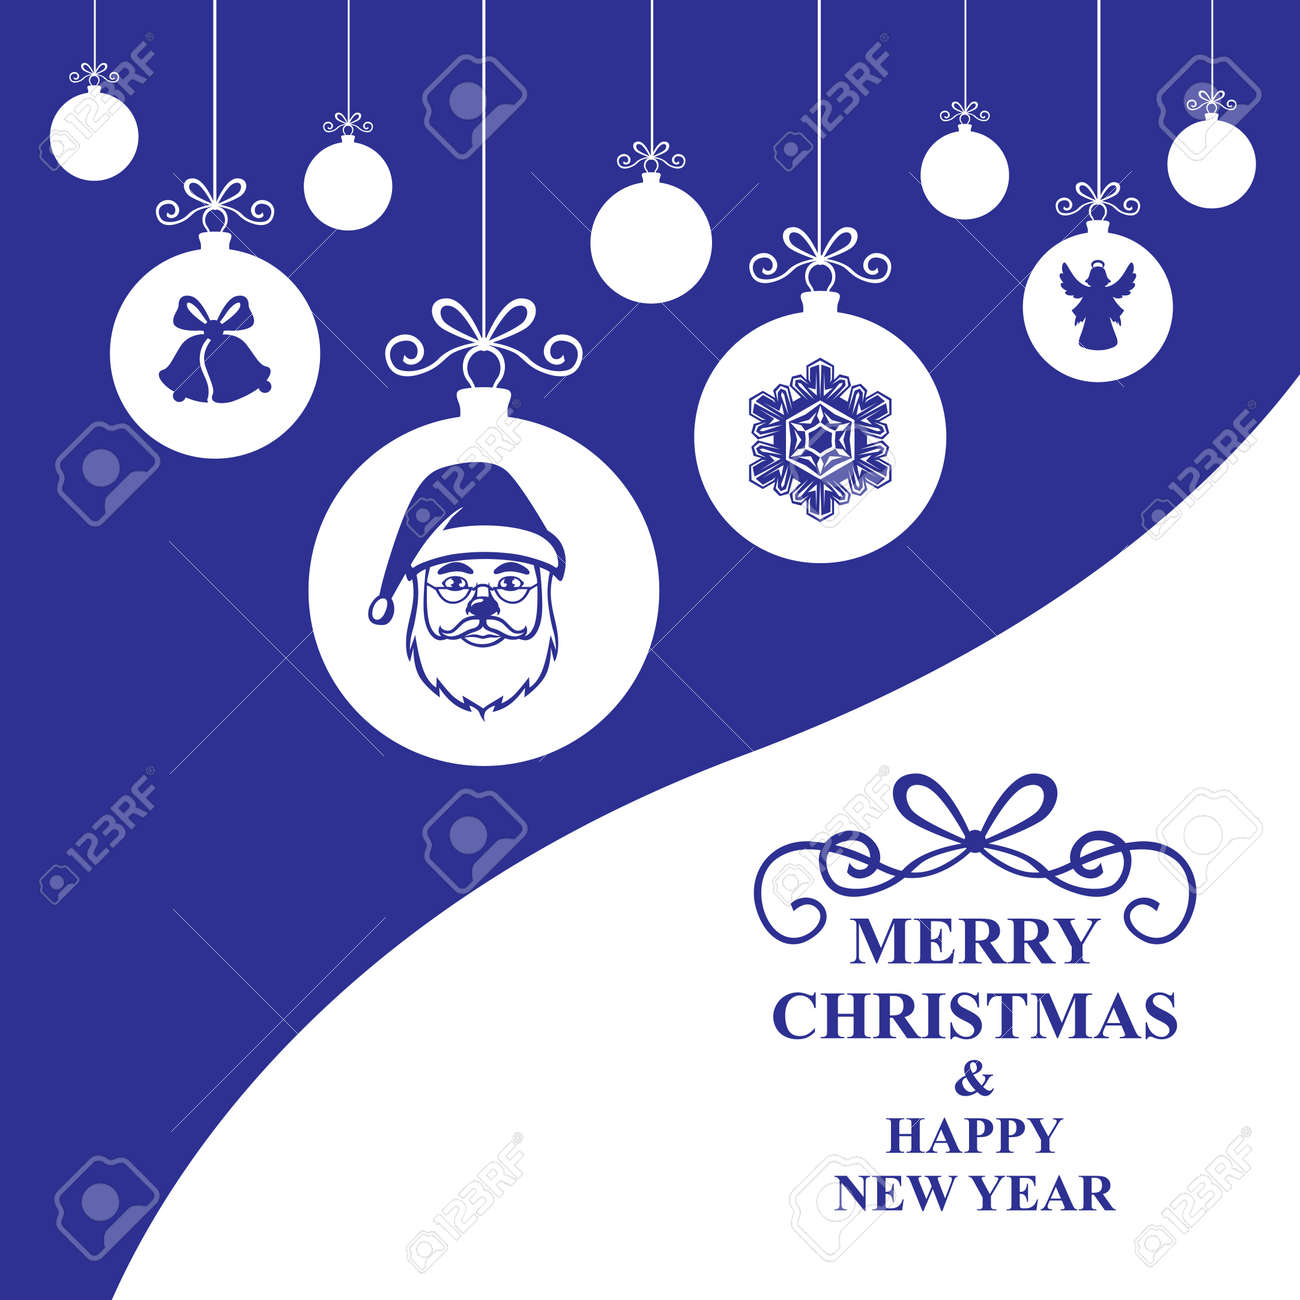 Vector Illustrations Of Greeting Christmas Card With Hang Decorative